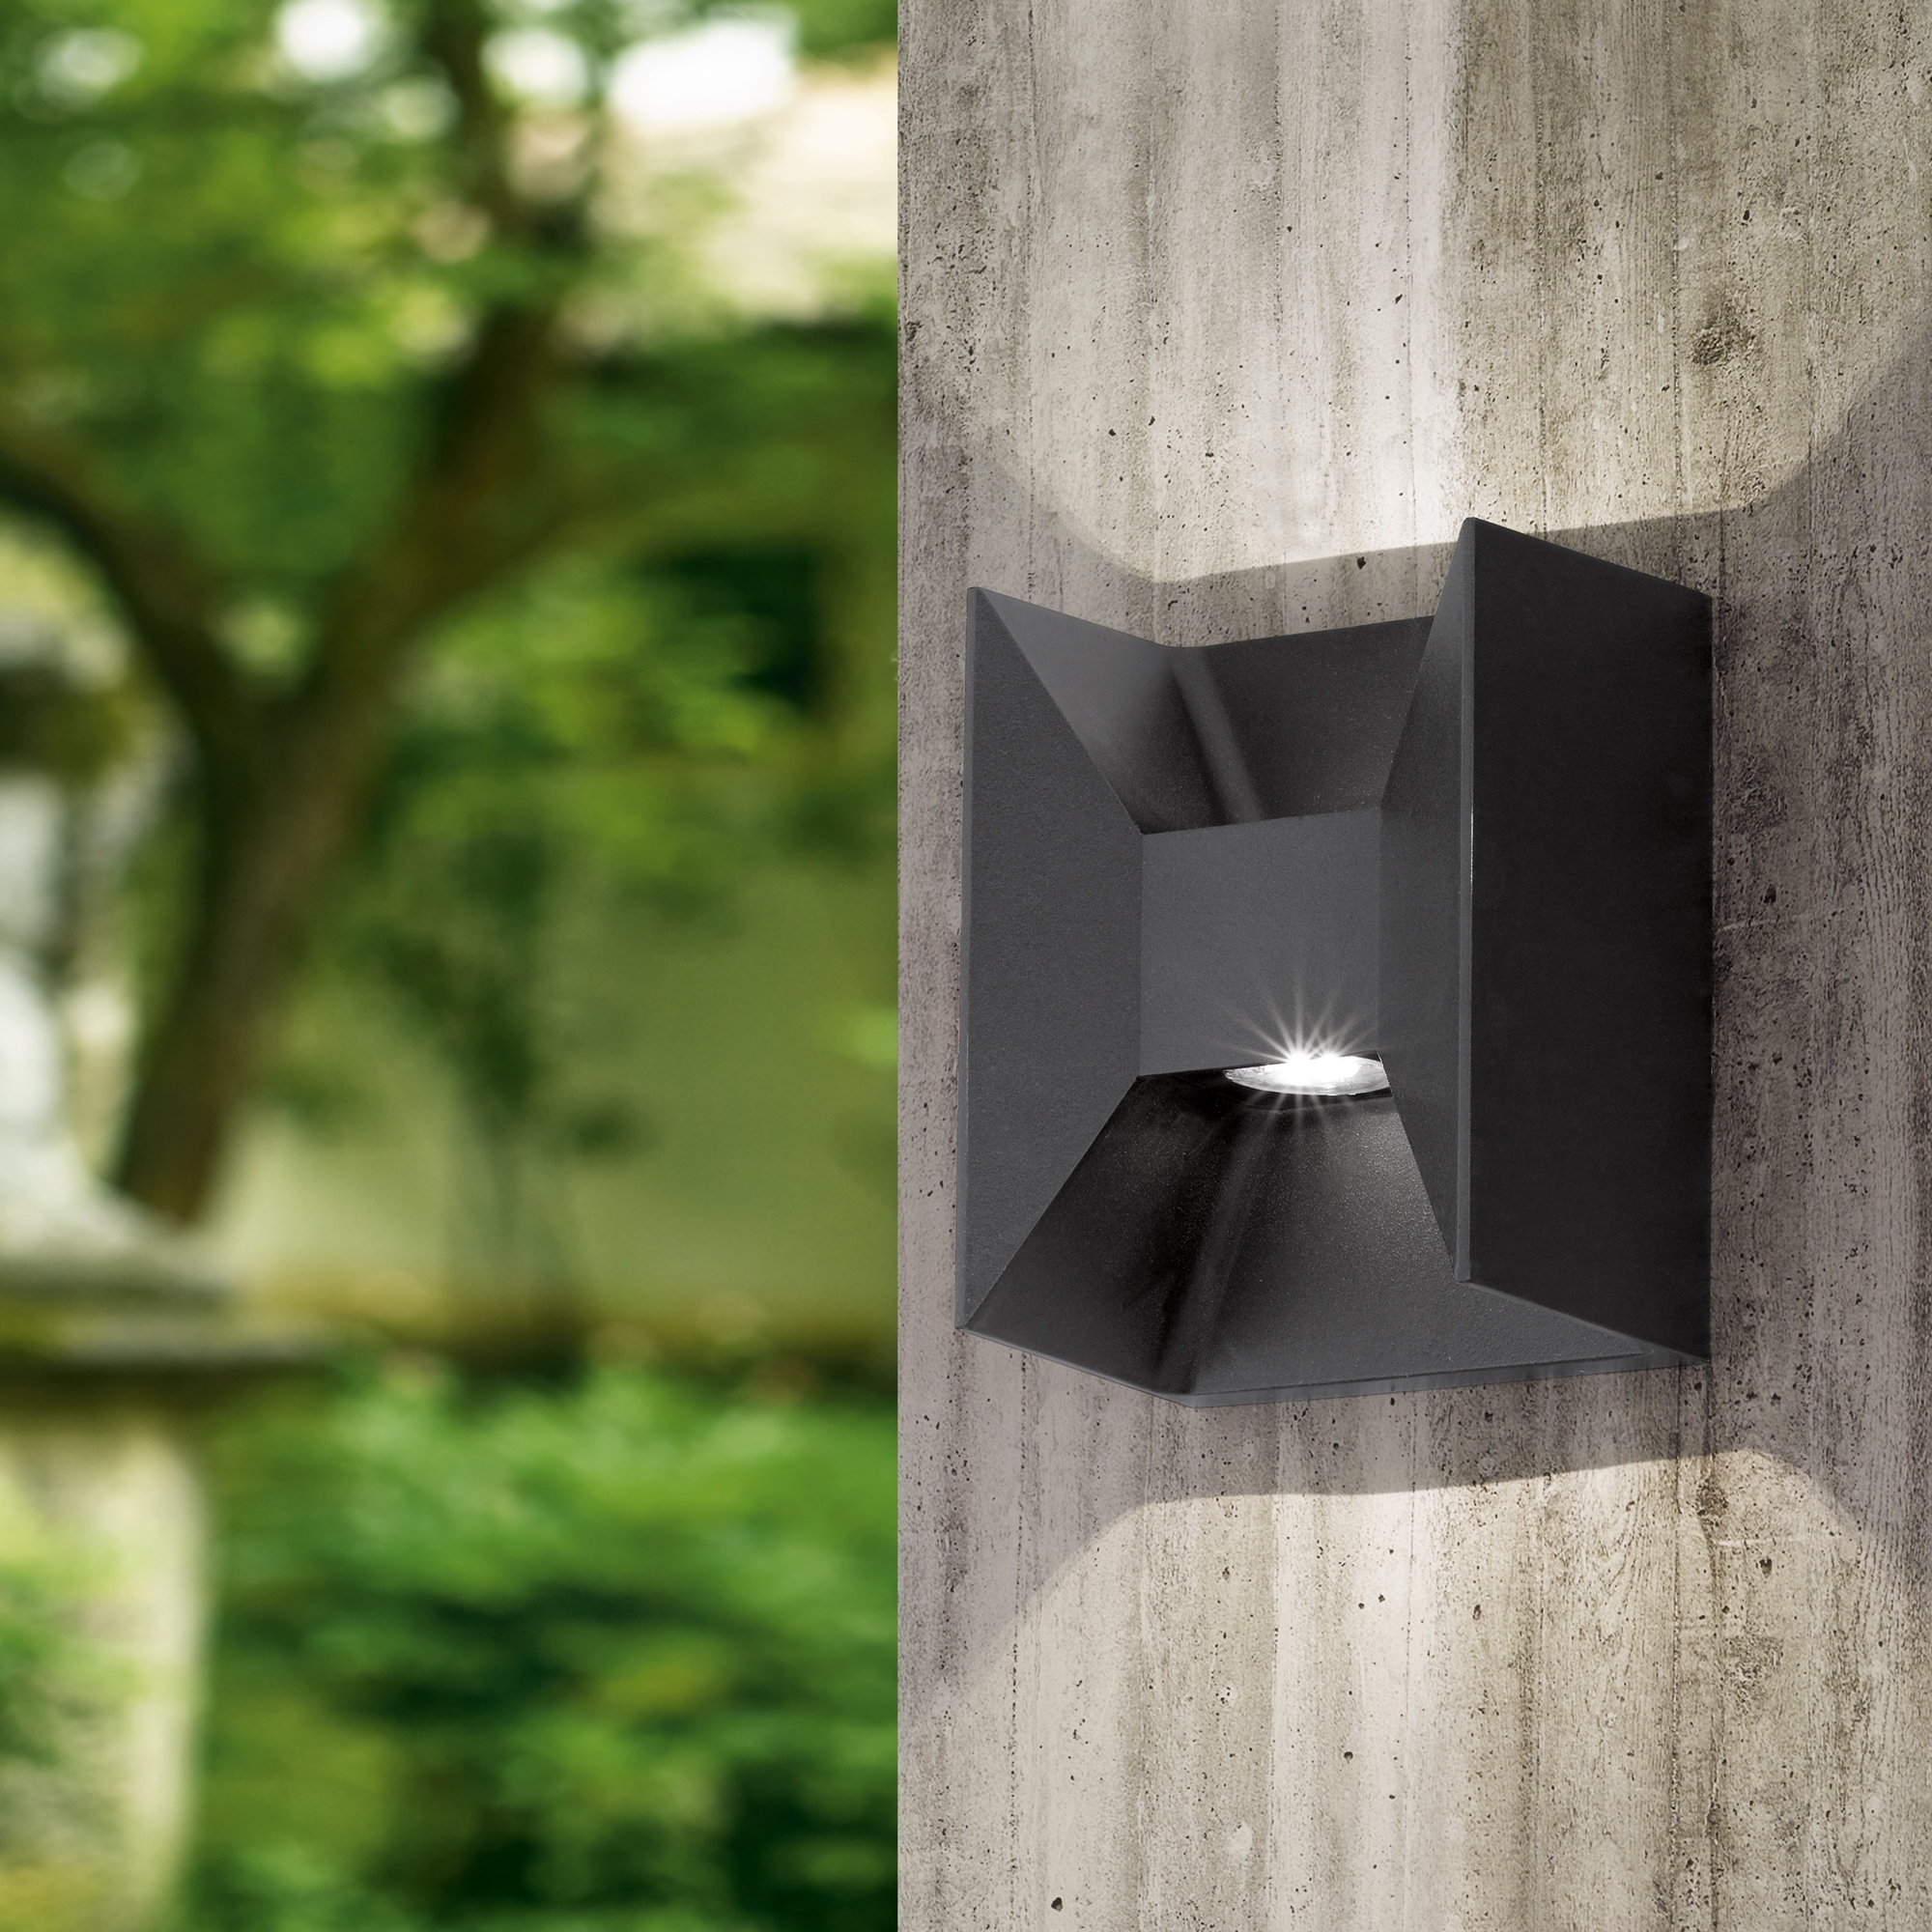 93319 / Morino / Outdoor Lighting / Main Collections / Products Throughout Eglo Outdoor Lighting (#5 of 15)